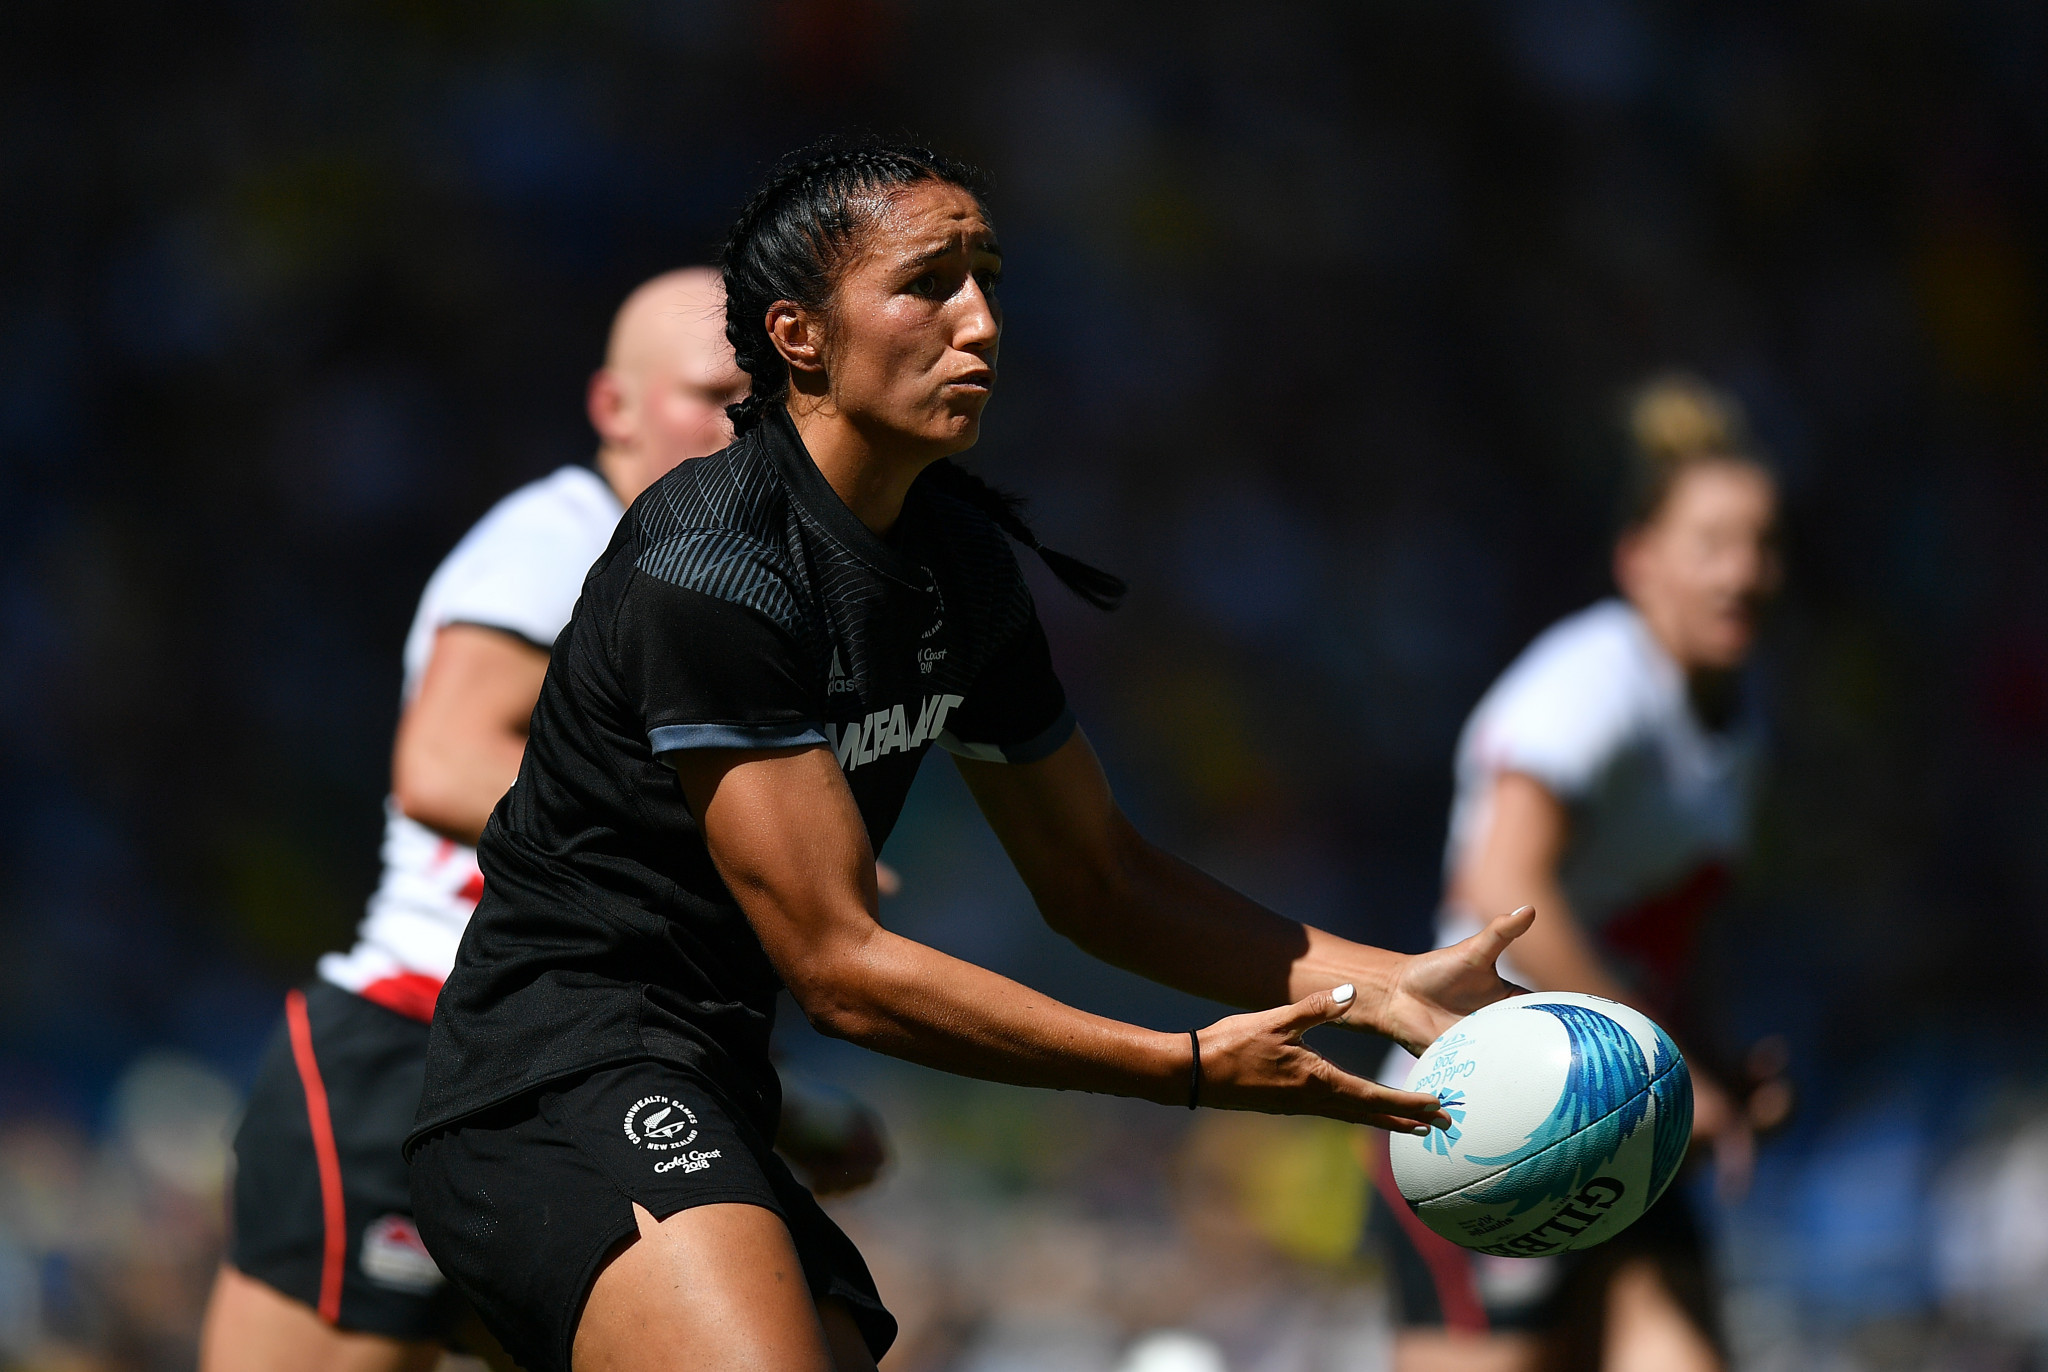 New Zealand hoping to build on Gold Coast 2018 triumph at Women's Sevens Series in Kitakyushu